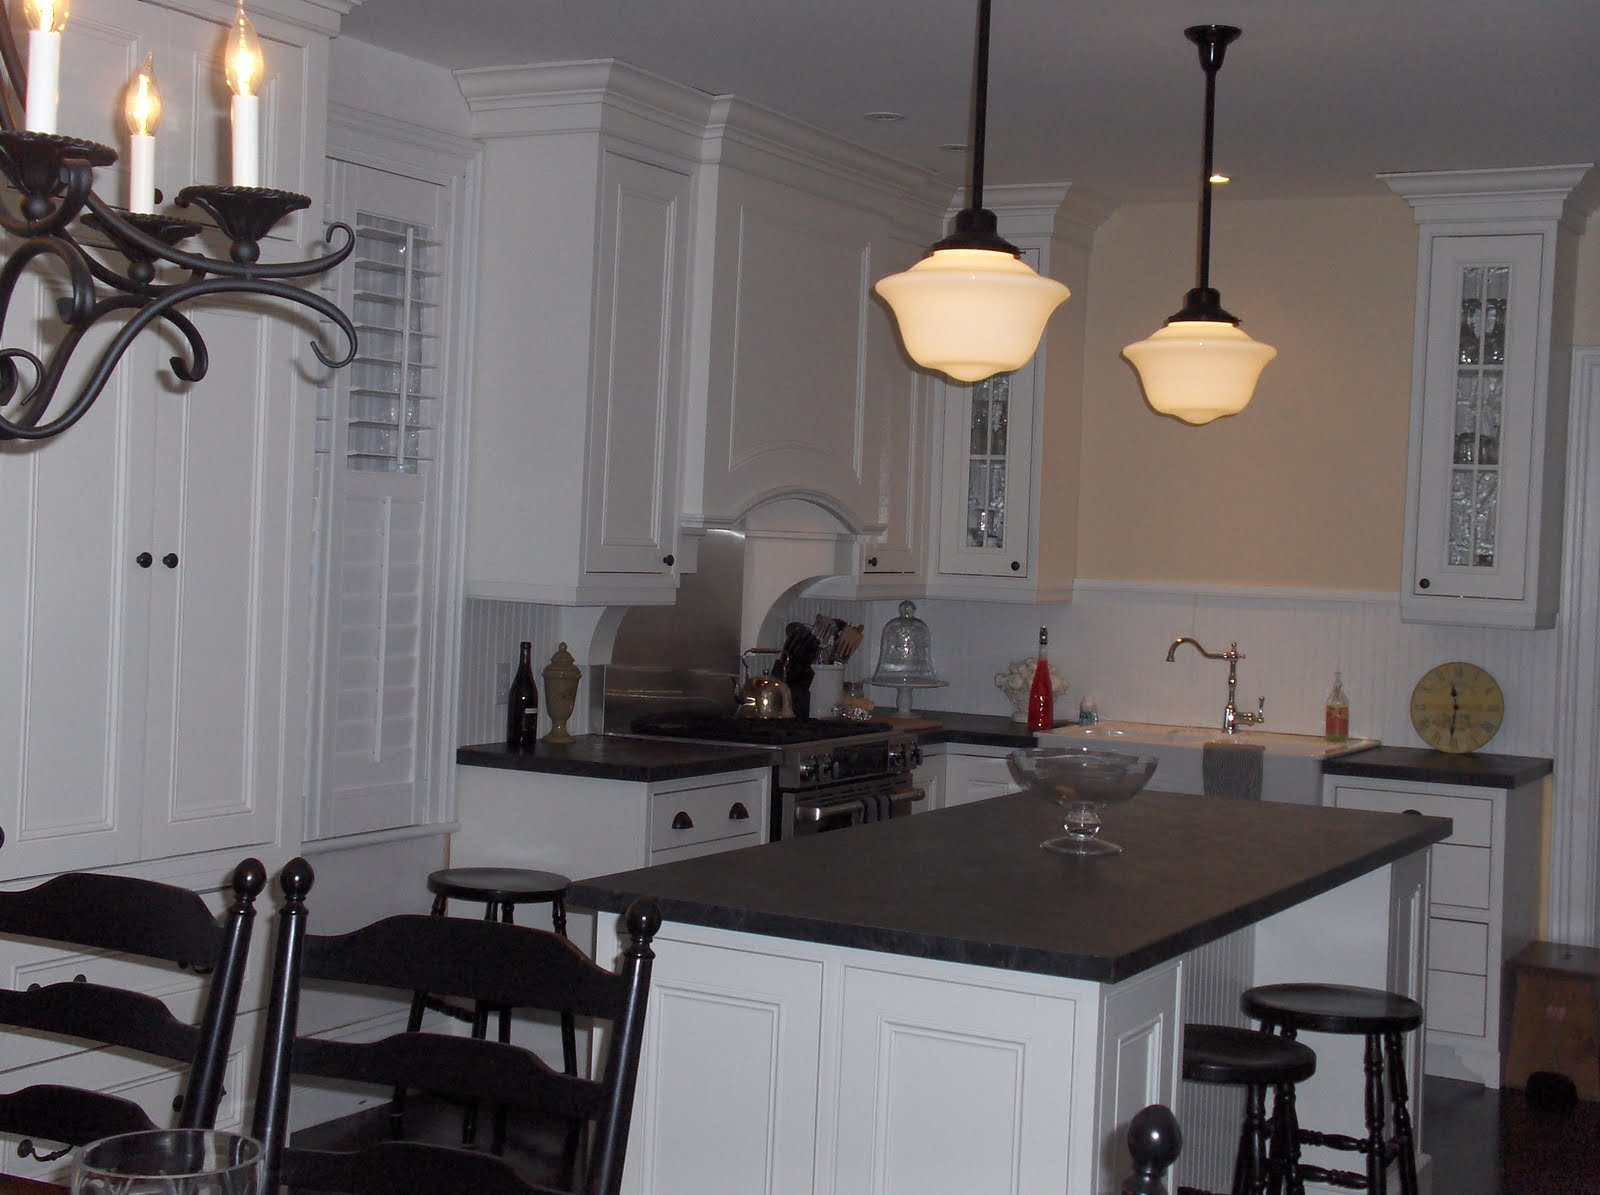 The Excellent Ideas to change white kitchen cabinets Photograph